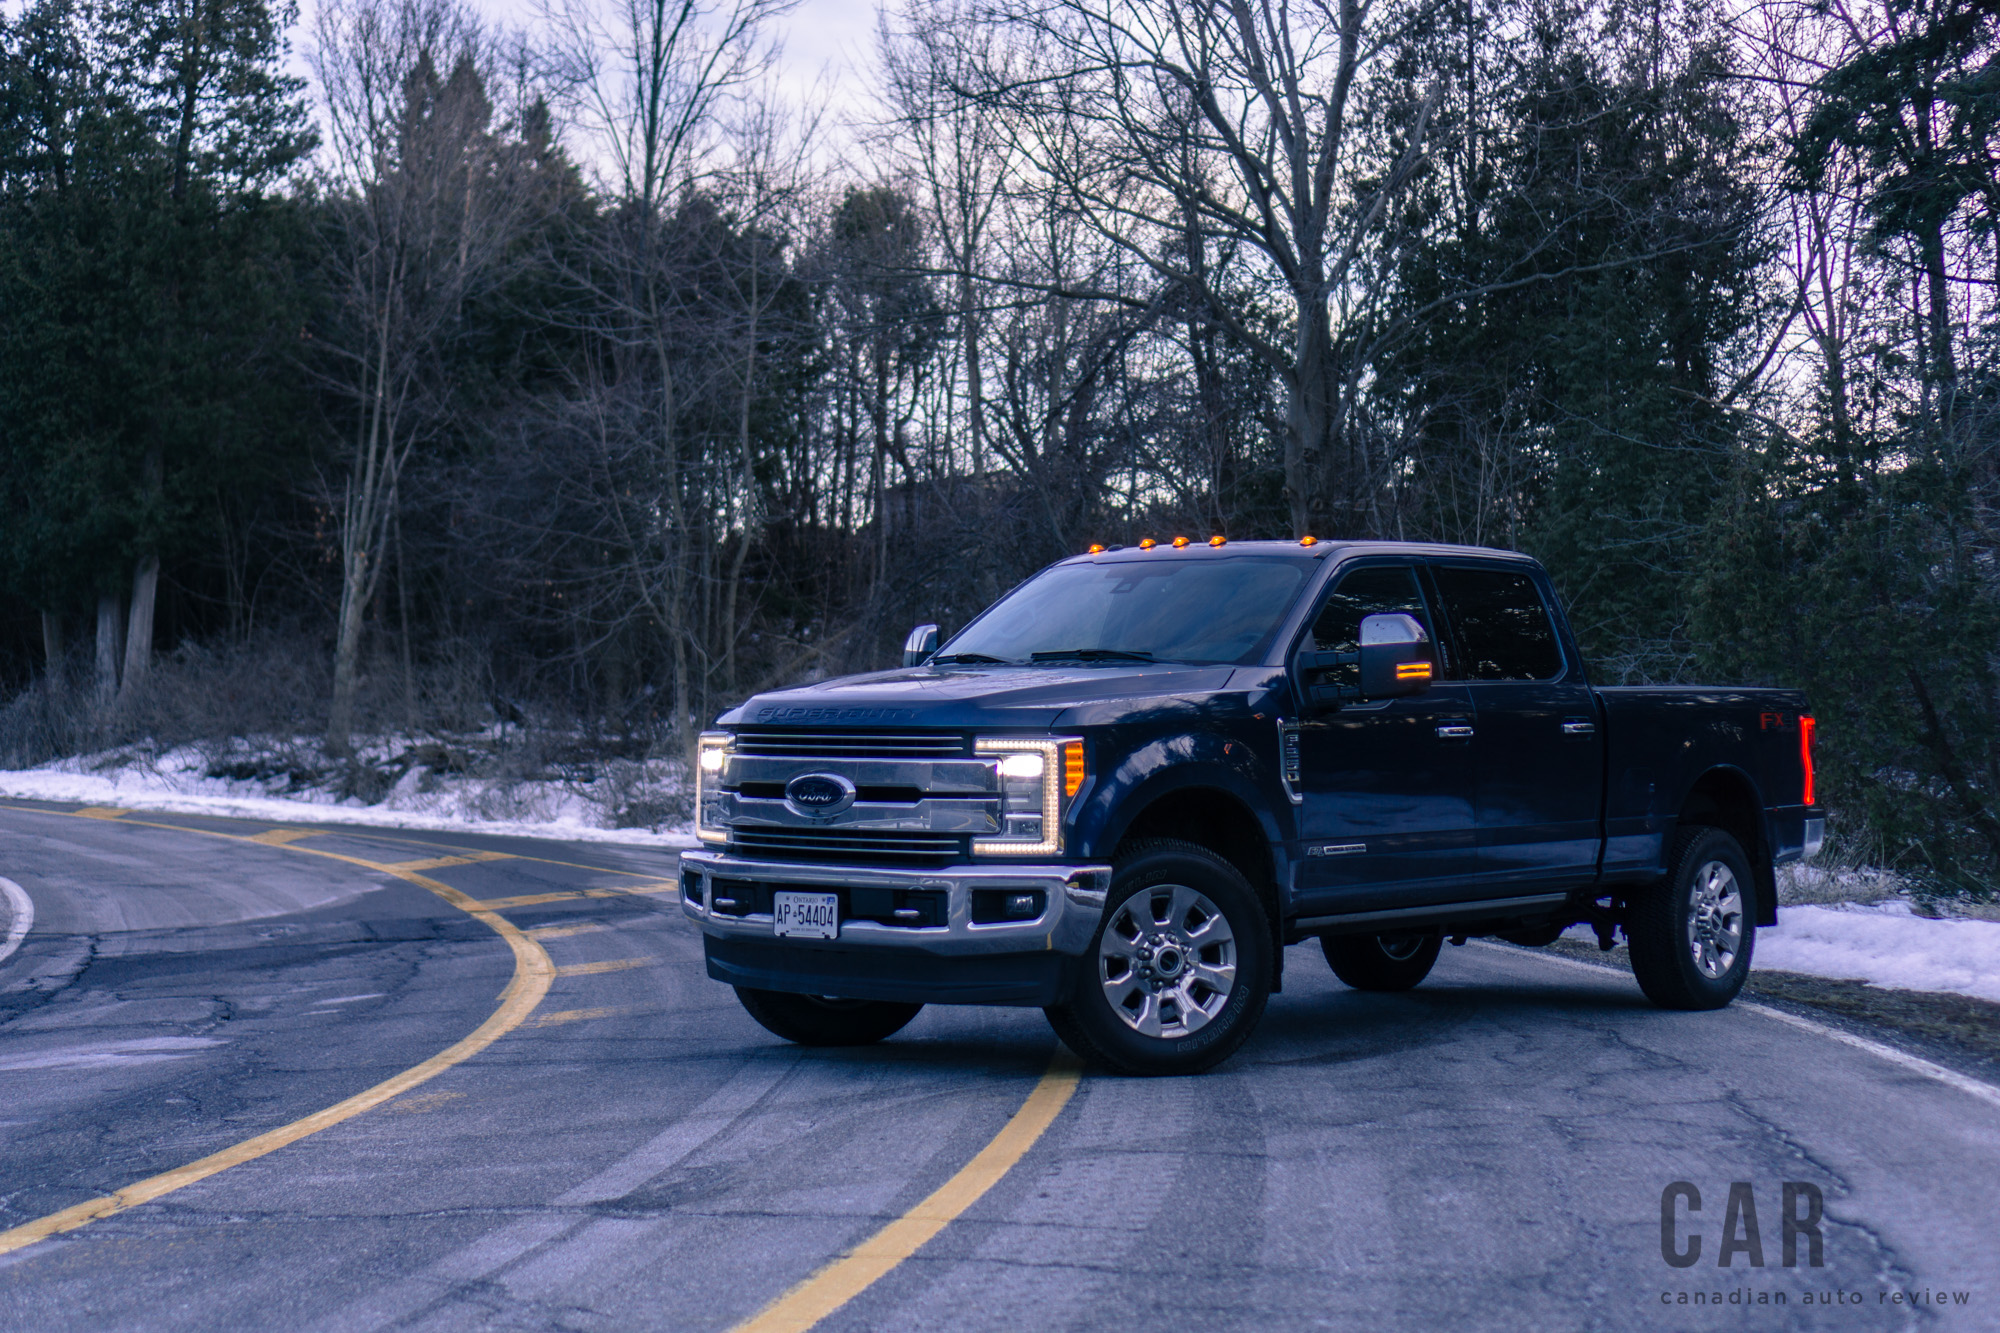 review 2017 ford f 250 super duty canadian auto review. Black Bedroom Furniture Sets. Home Design Ideas